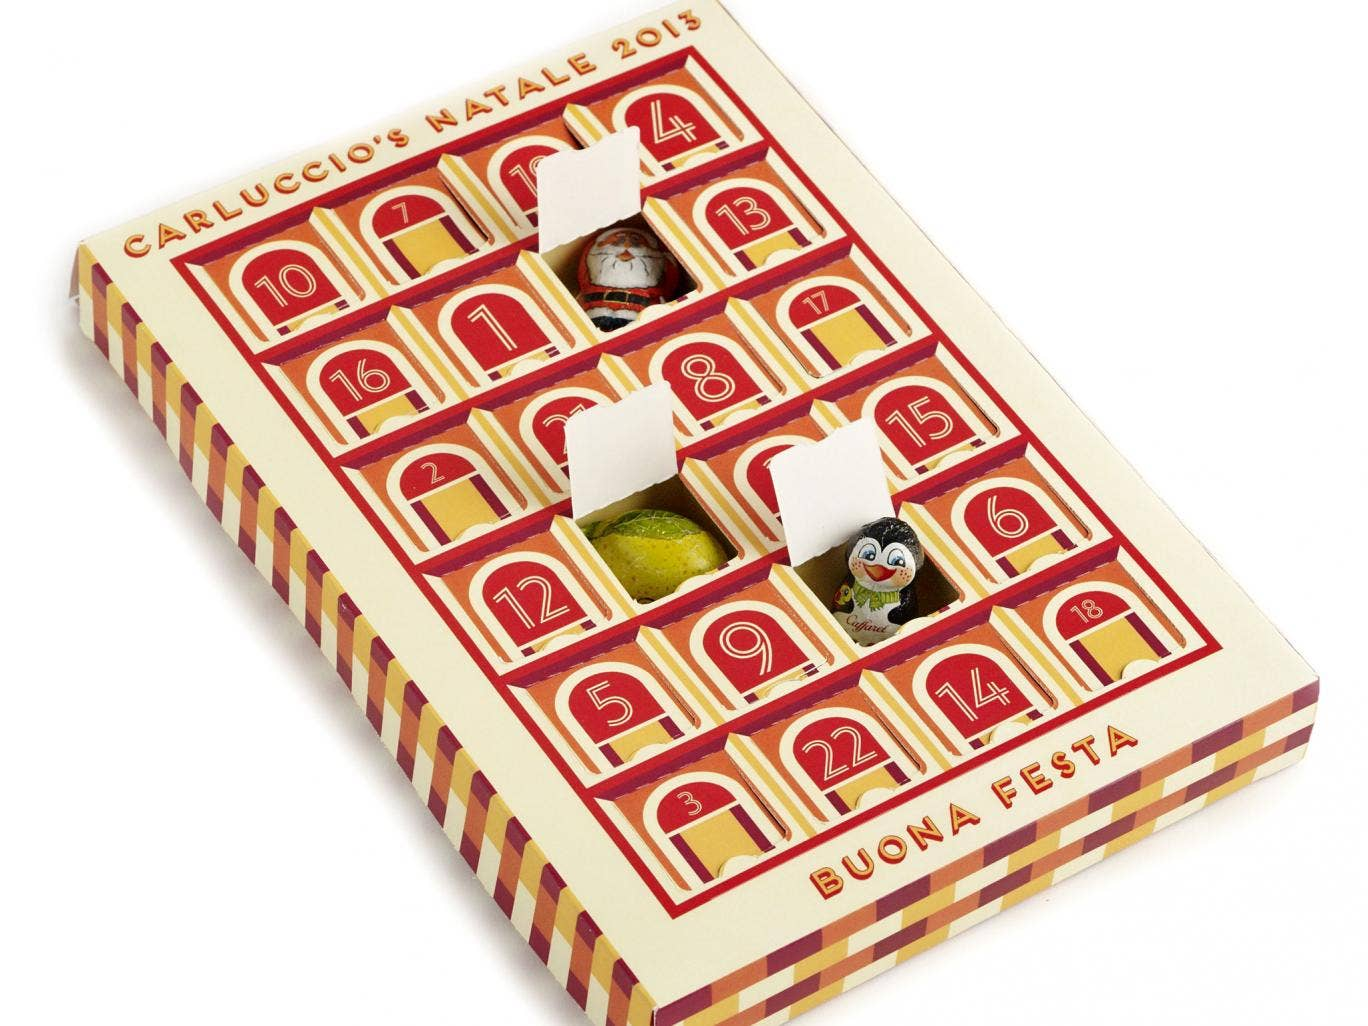 <b>5. Carluccios Beuno Festa</b> This is the first year Carluccio's has produced an advent calendar and it was worth the wait. Besides the beautiful packaging, inspired by the colours of Bologna, each window reveals high-quality, foil wrapped chocolate in